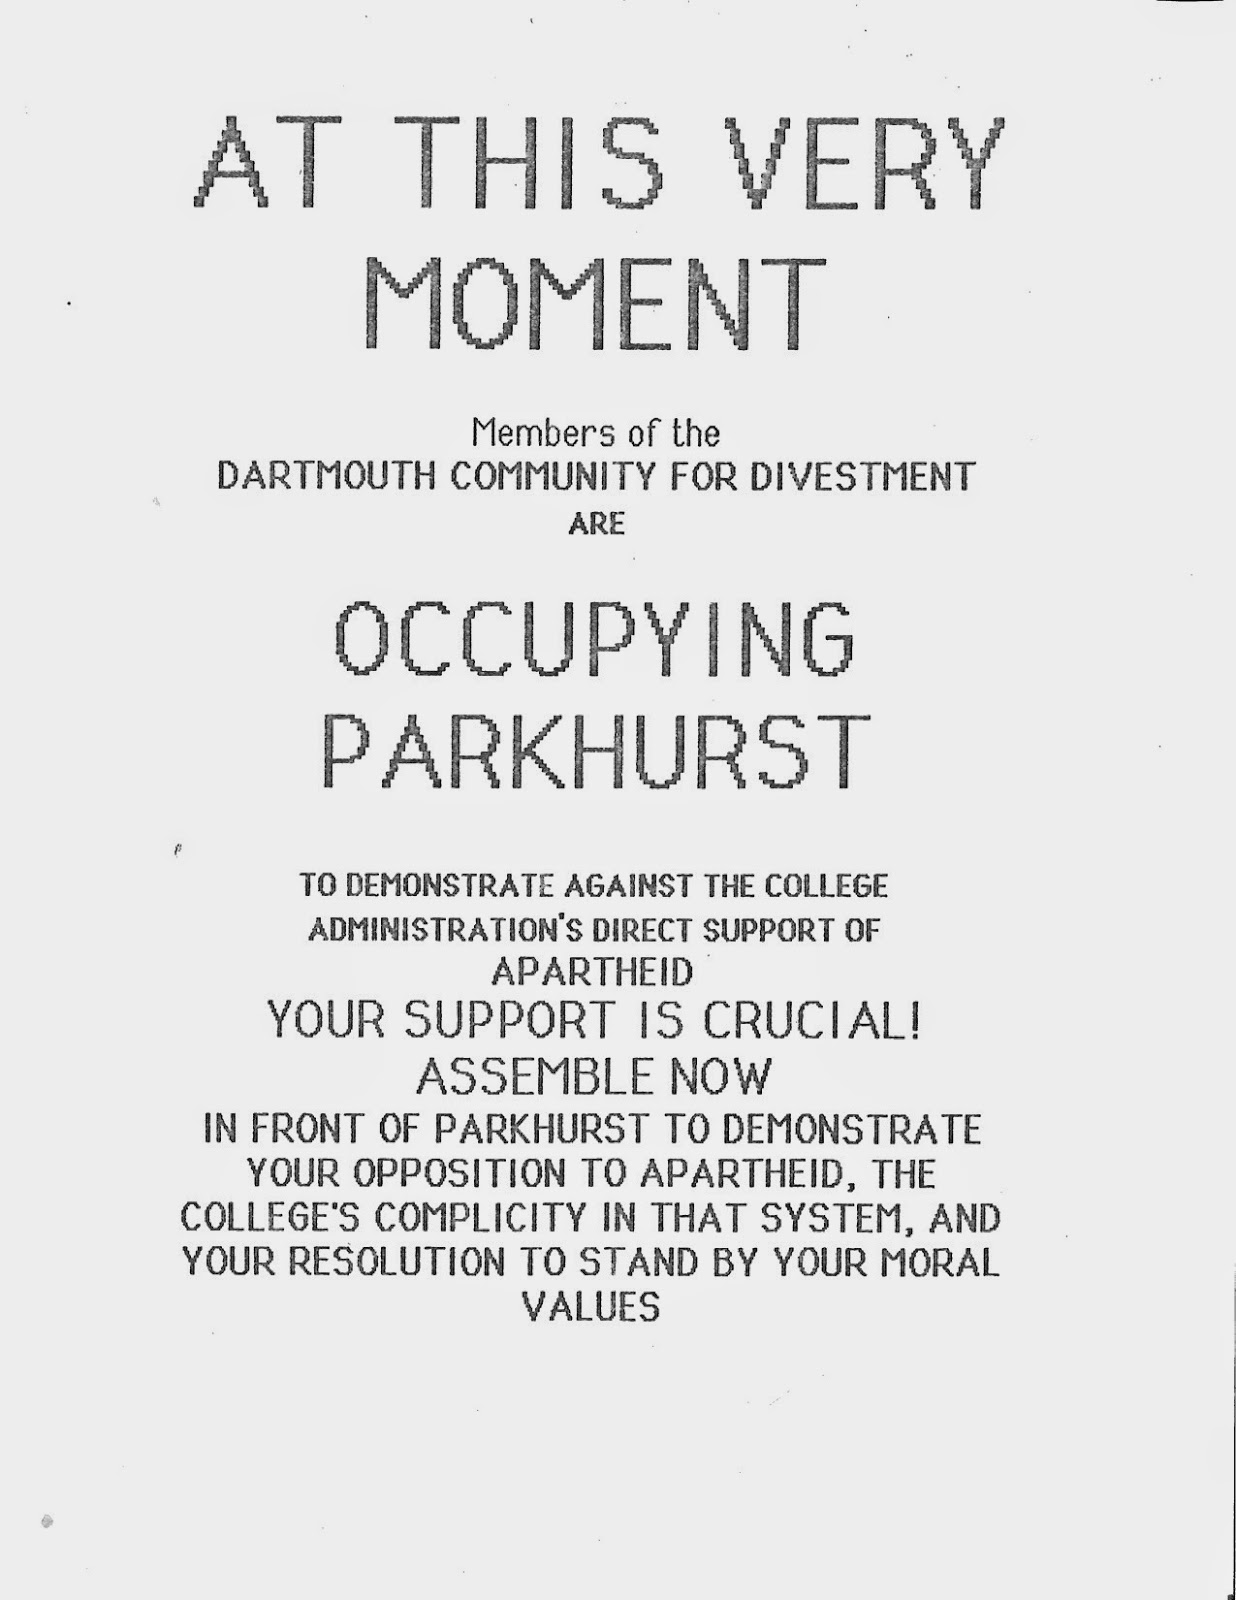 An announcement of occupation.